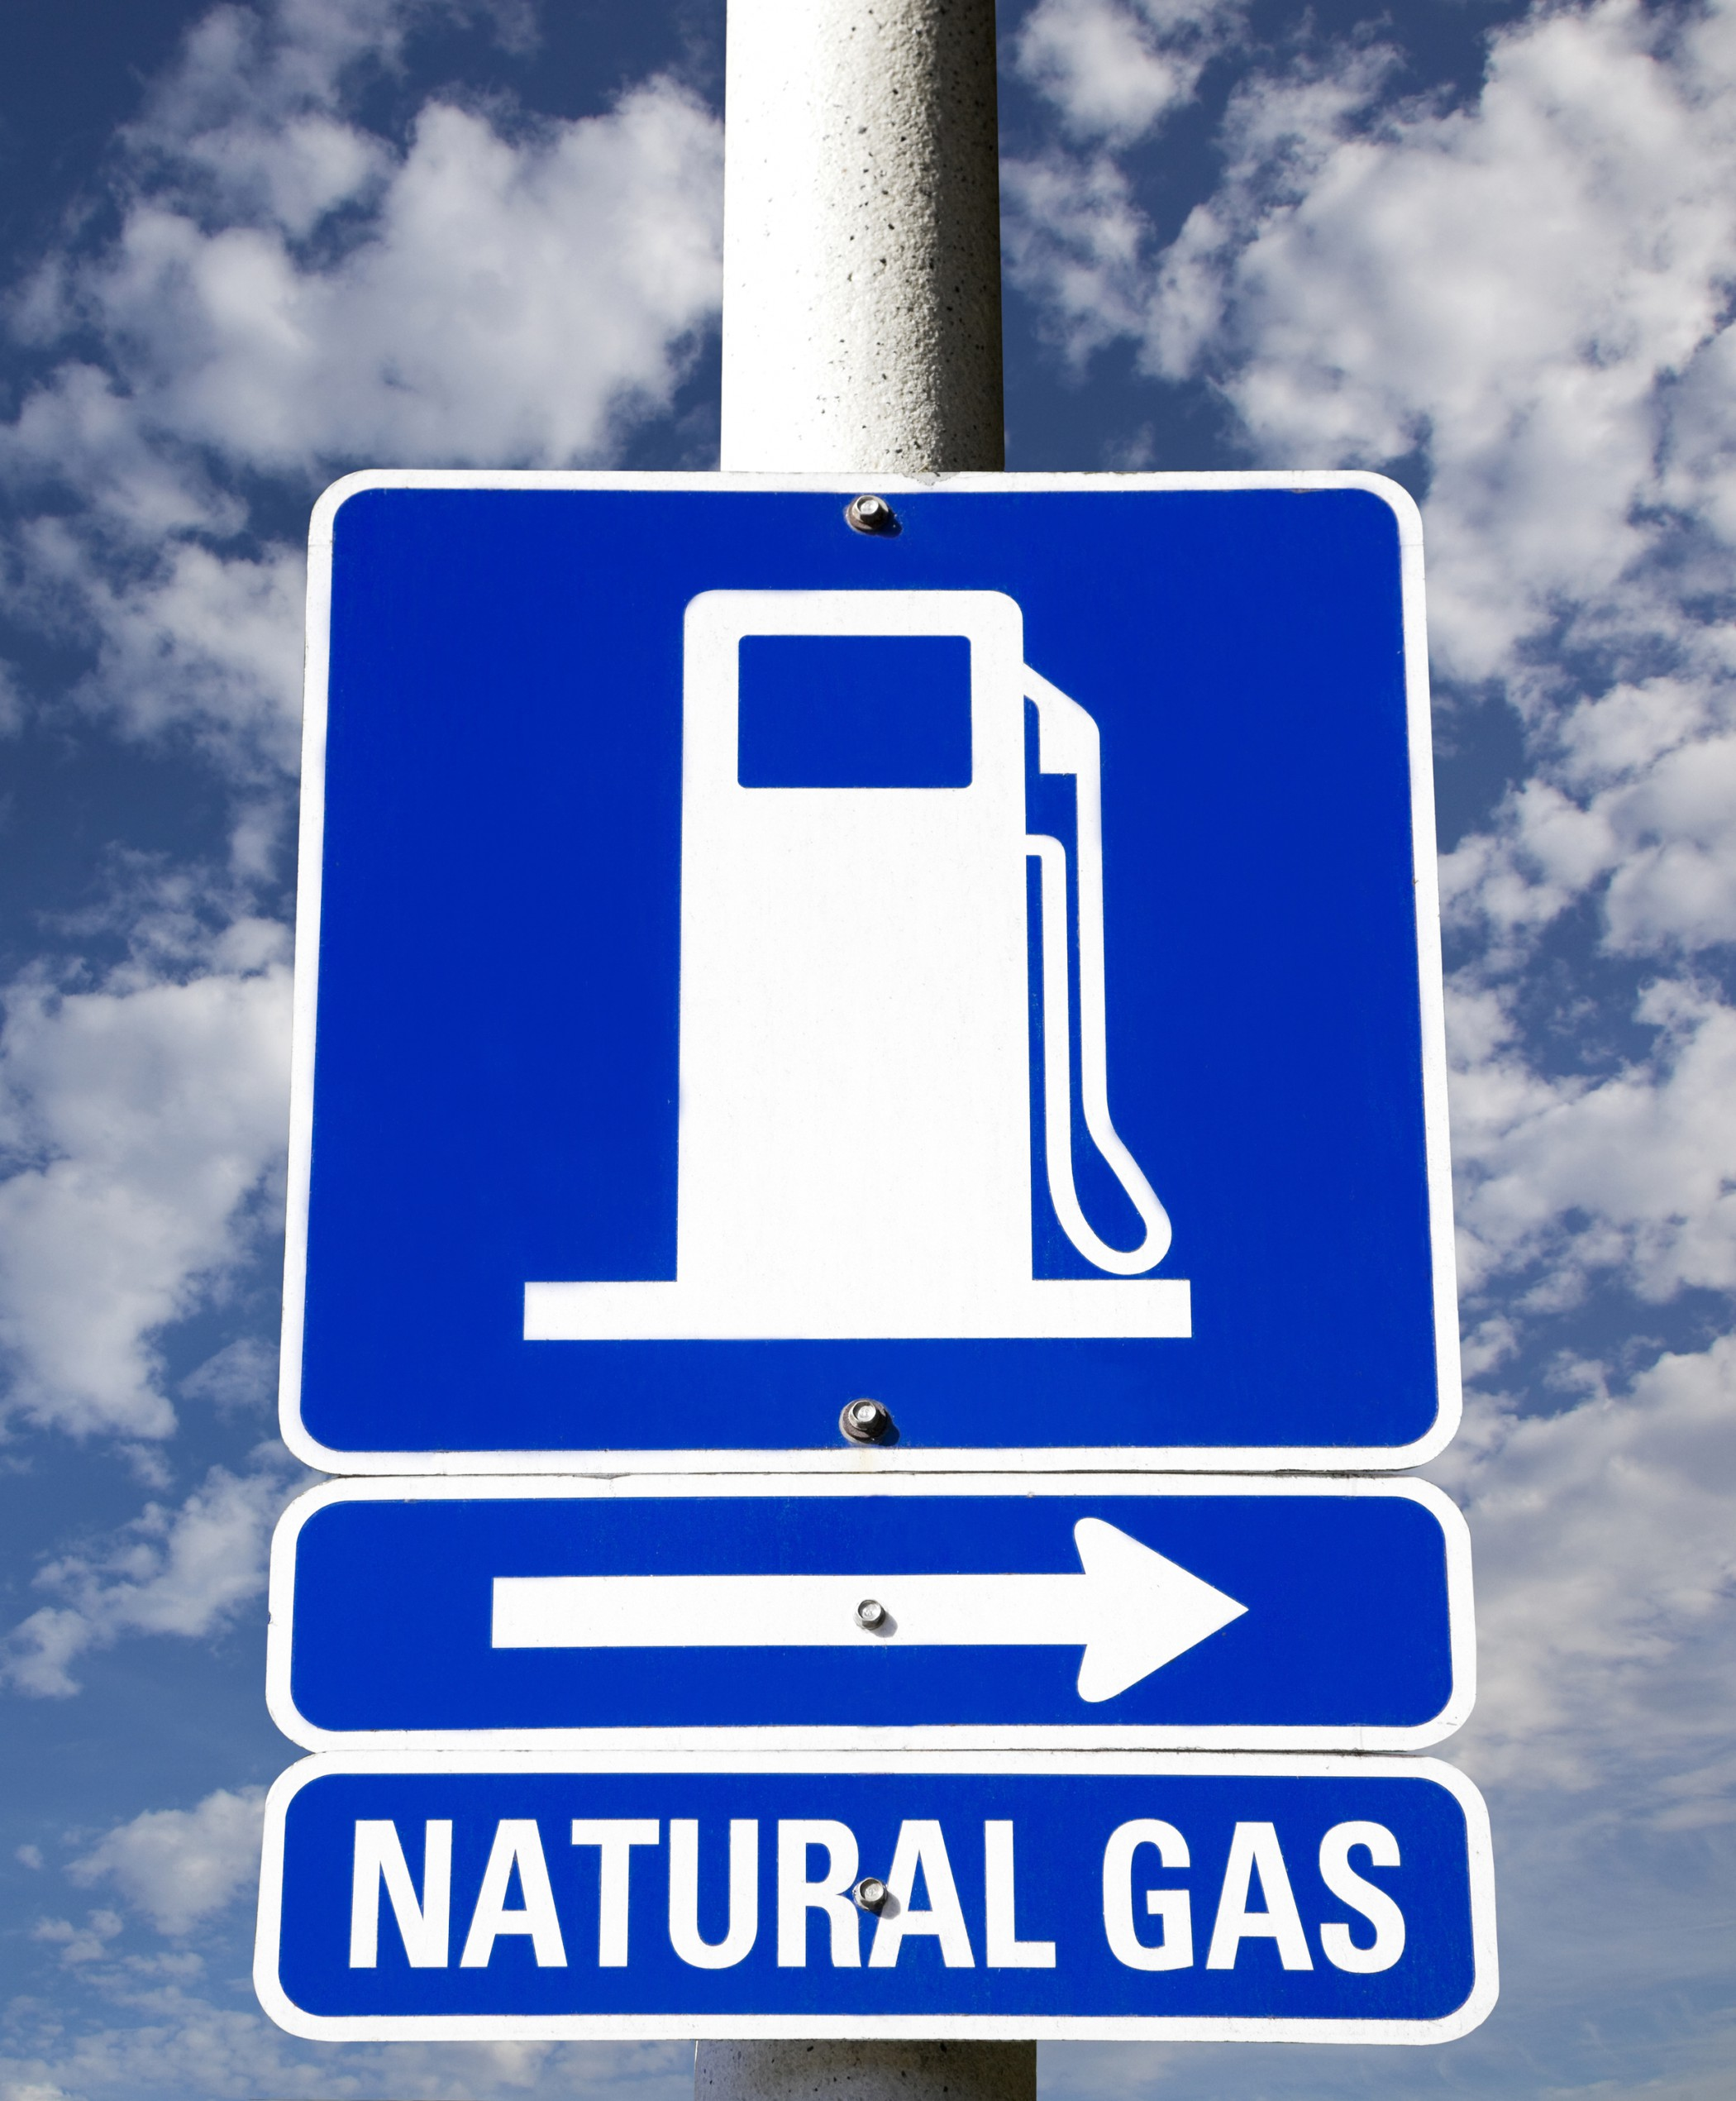 Transition to Natural Gas Goes Smoother than Expected